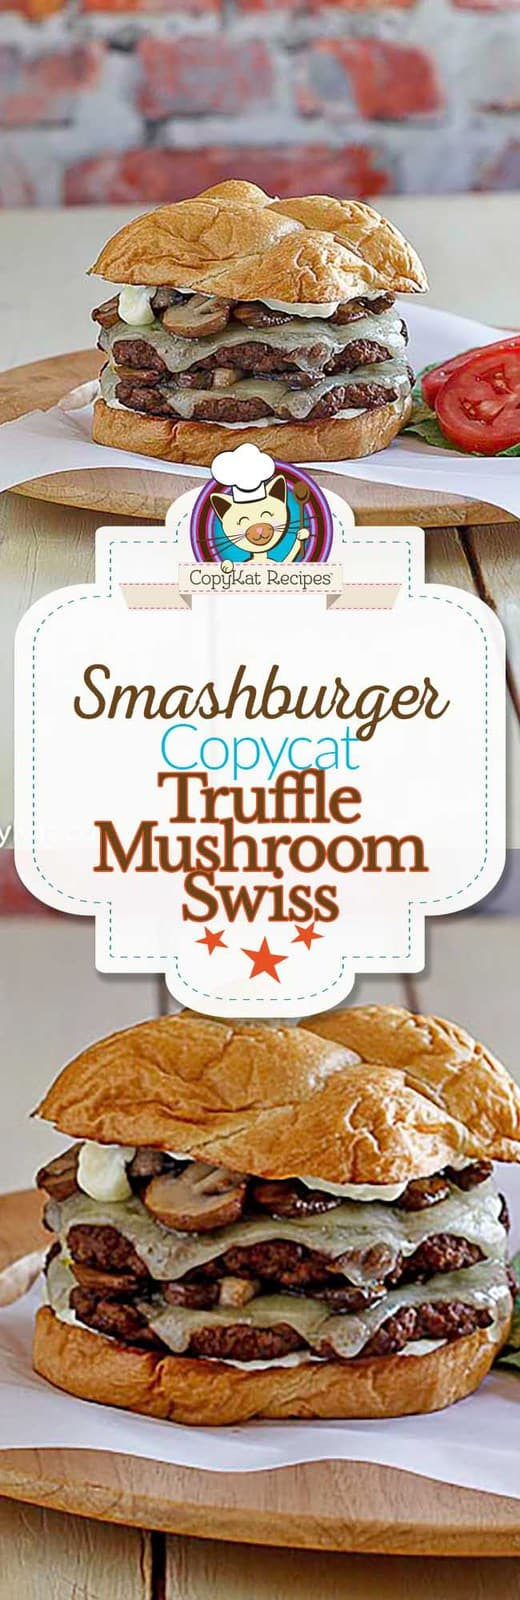 You can recreate the Smashburger Truffle Mushroom Swiss at home with this copycat recipe.